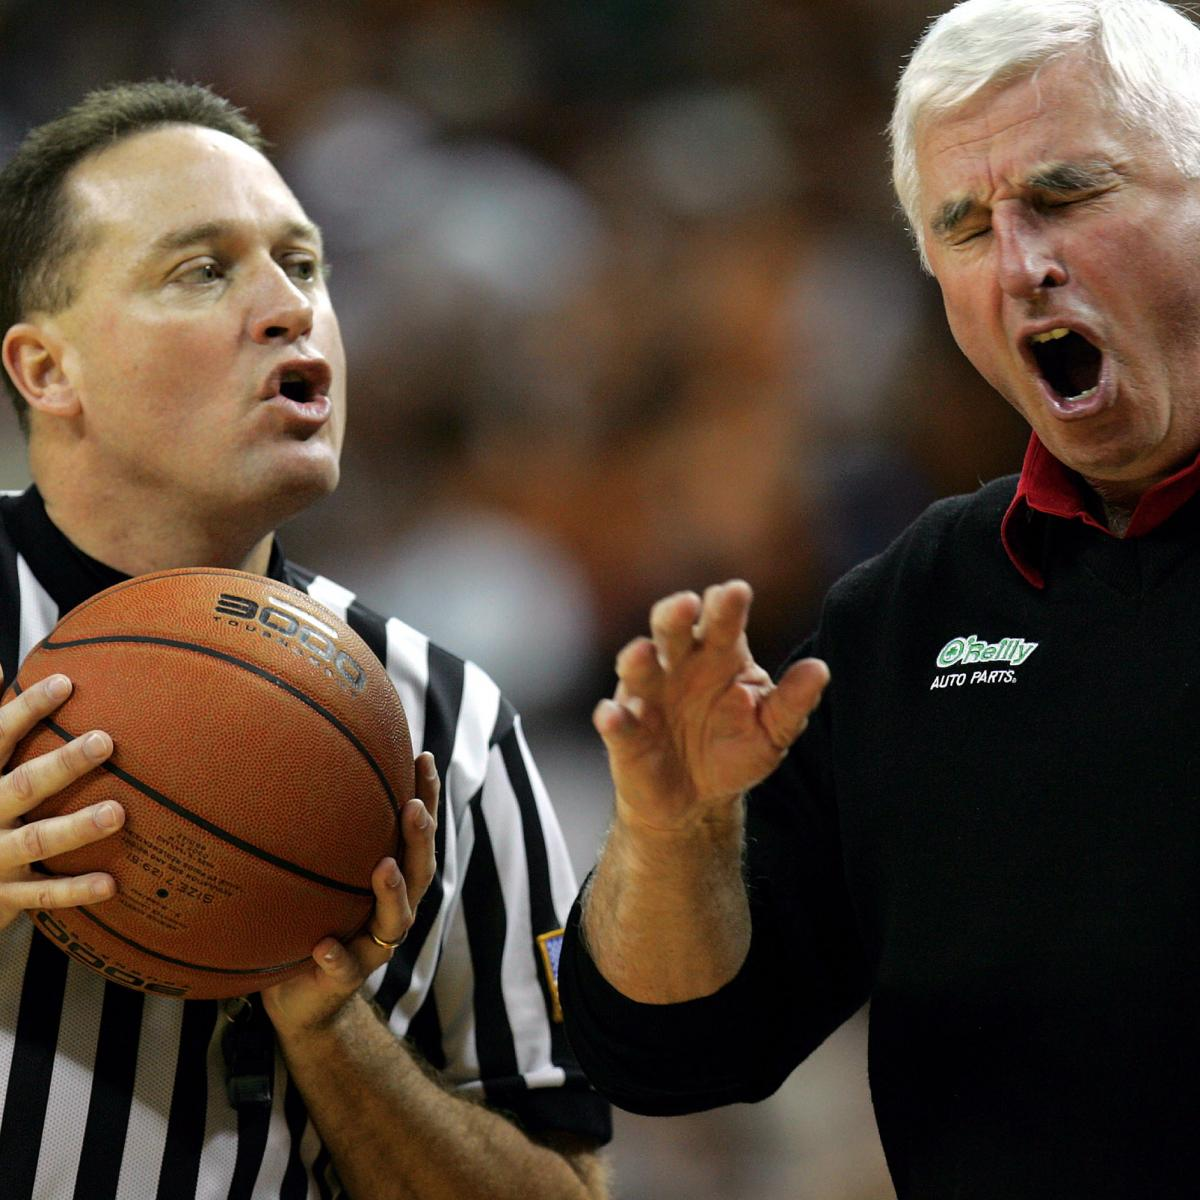 Bobby knight throwing chair gif - Bobby Knight Throwing Chair Gif 12